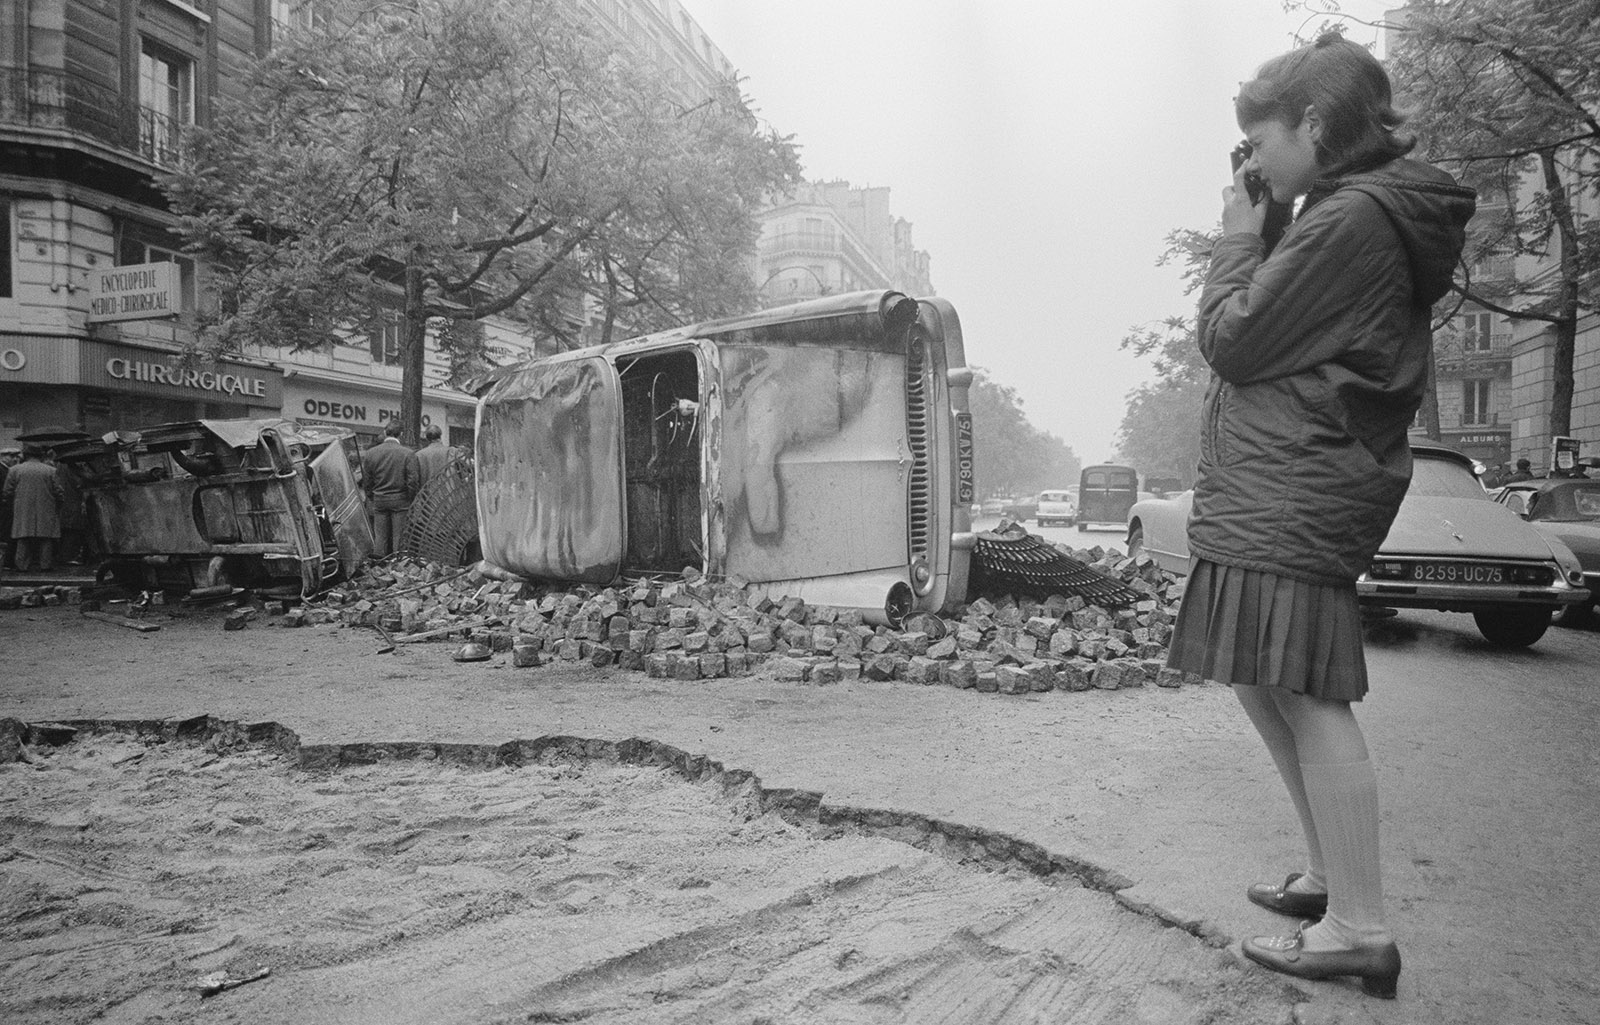 A young Parisian photographing the barricades still in place the morning after riots in May 1968